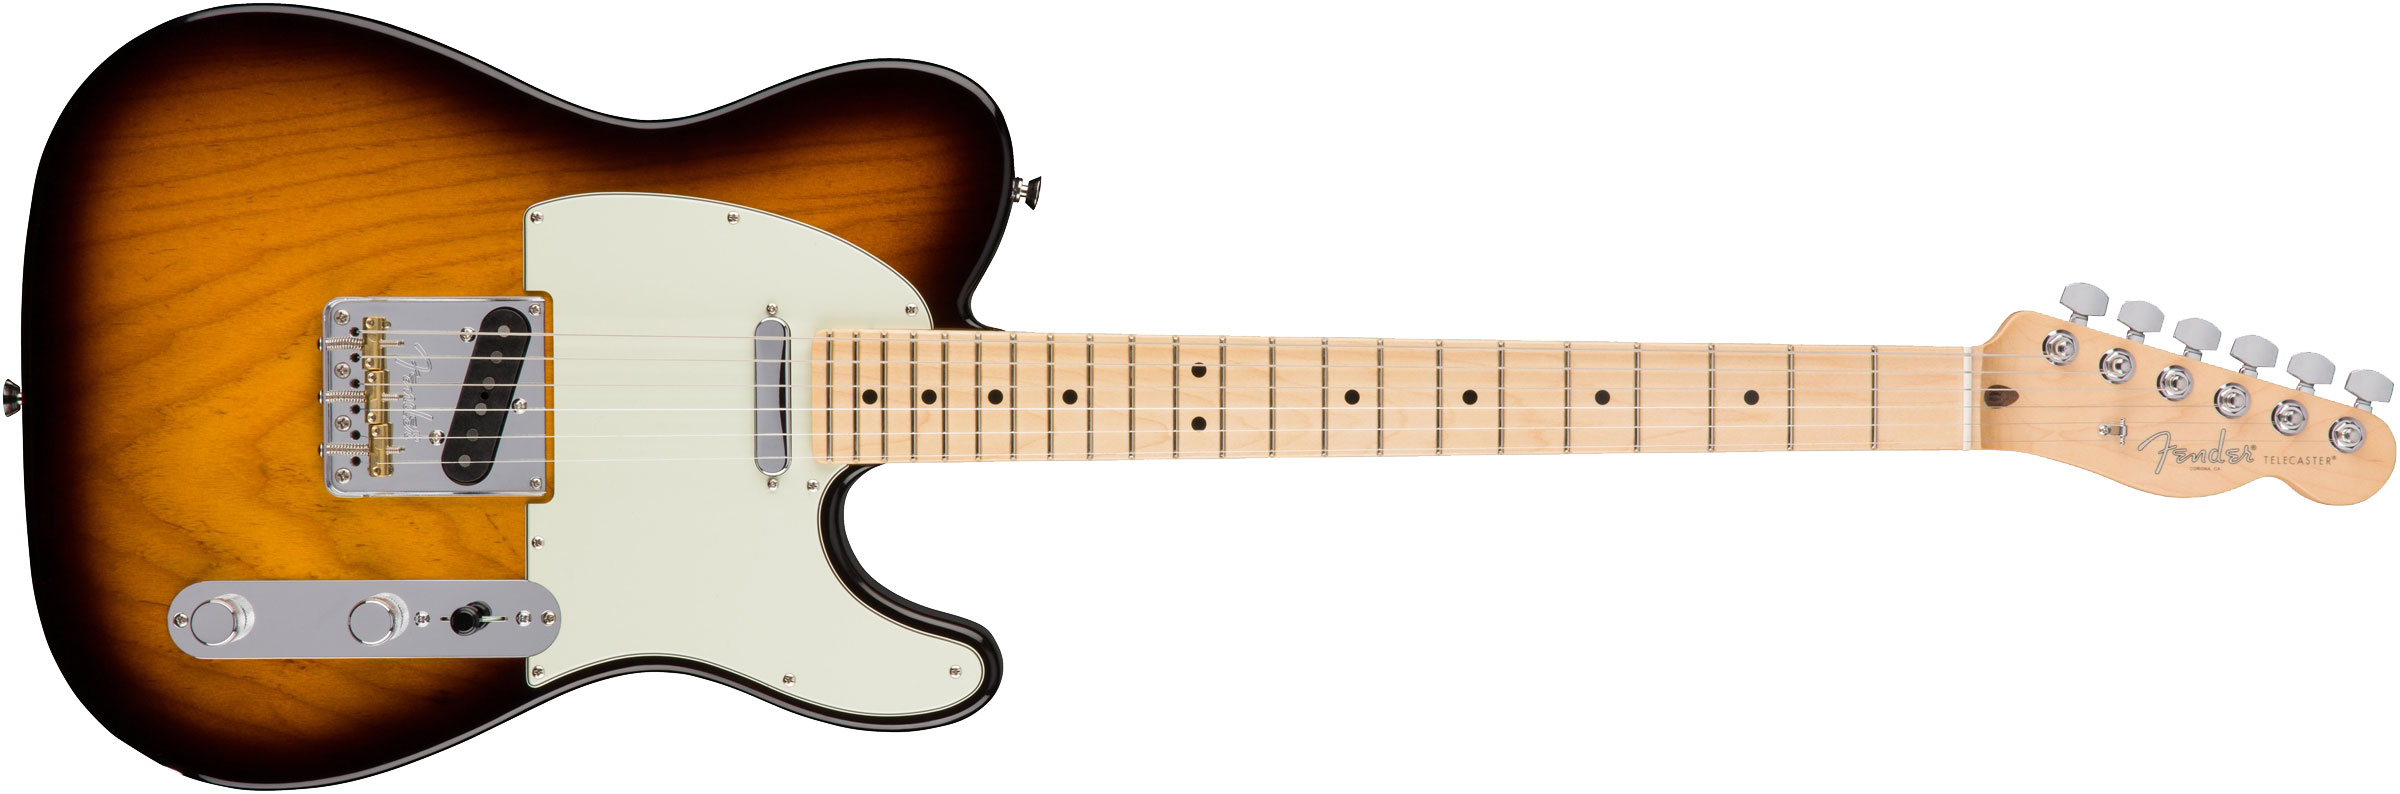 GUITARRA FENDER 011 3062 - AM PROFESSIONAL TELECASTER ASH MN - 703 - 2-COLOR SUNBURST